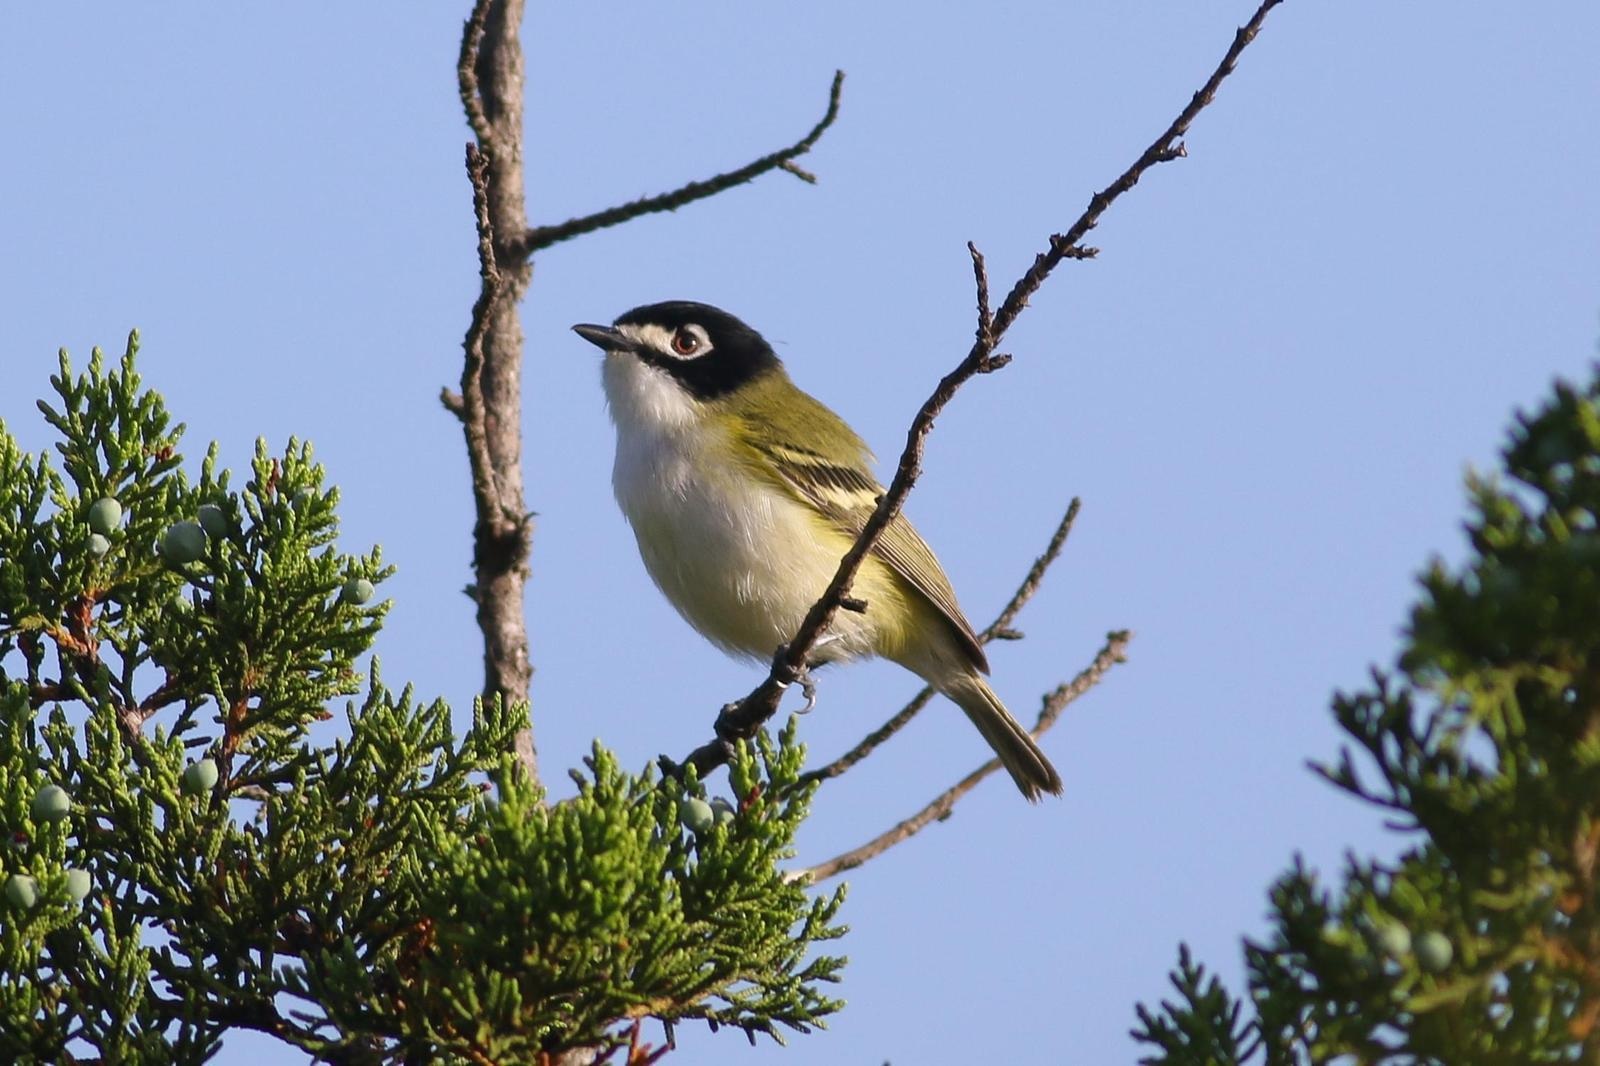 Black-capped Vireo Photo by Tom Ford-Hutchinson